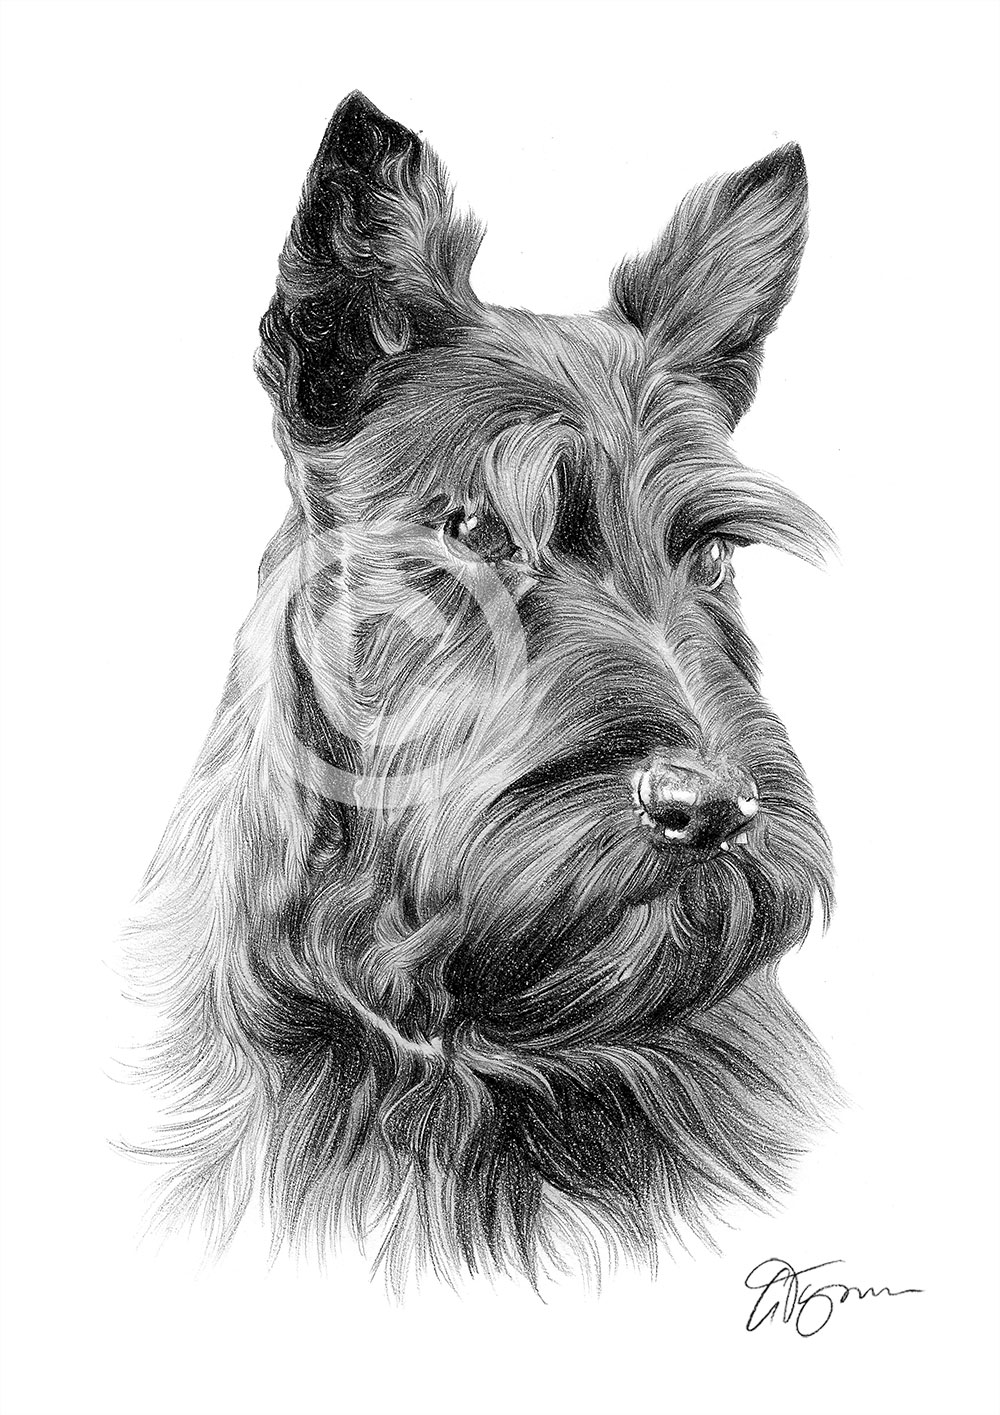 Pencil Drawing Of An Adult Scottish Terrier By Artist Gary Tymon